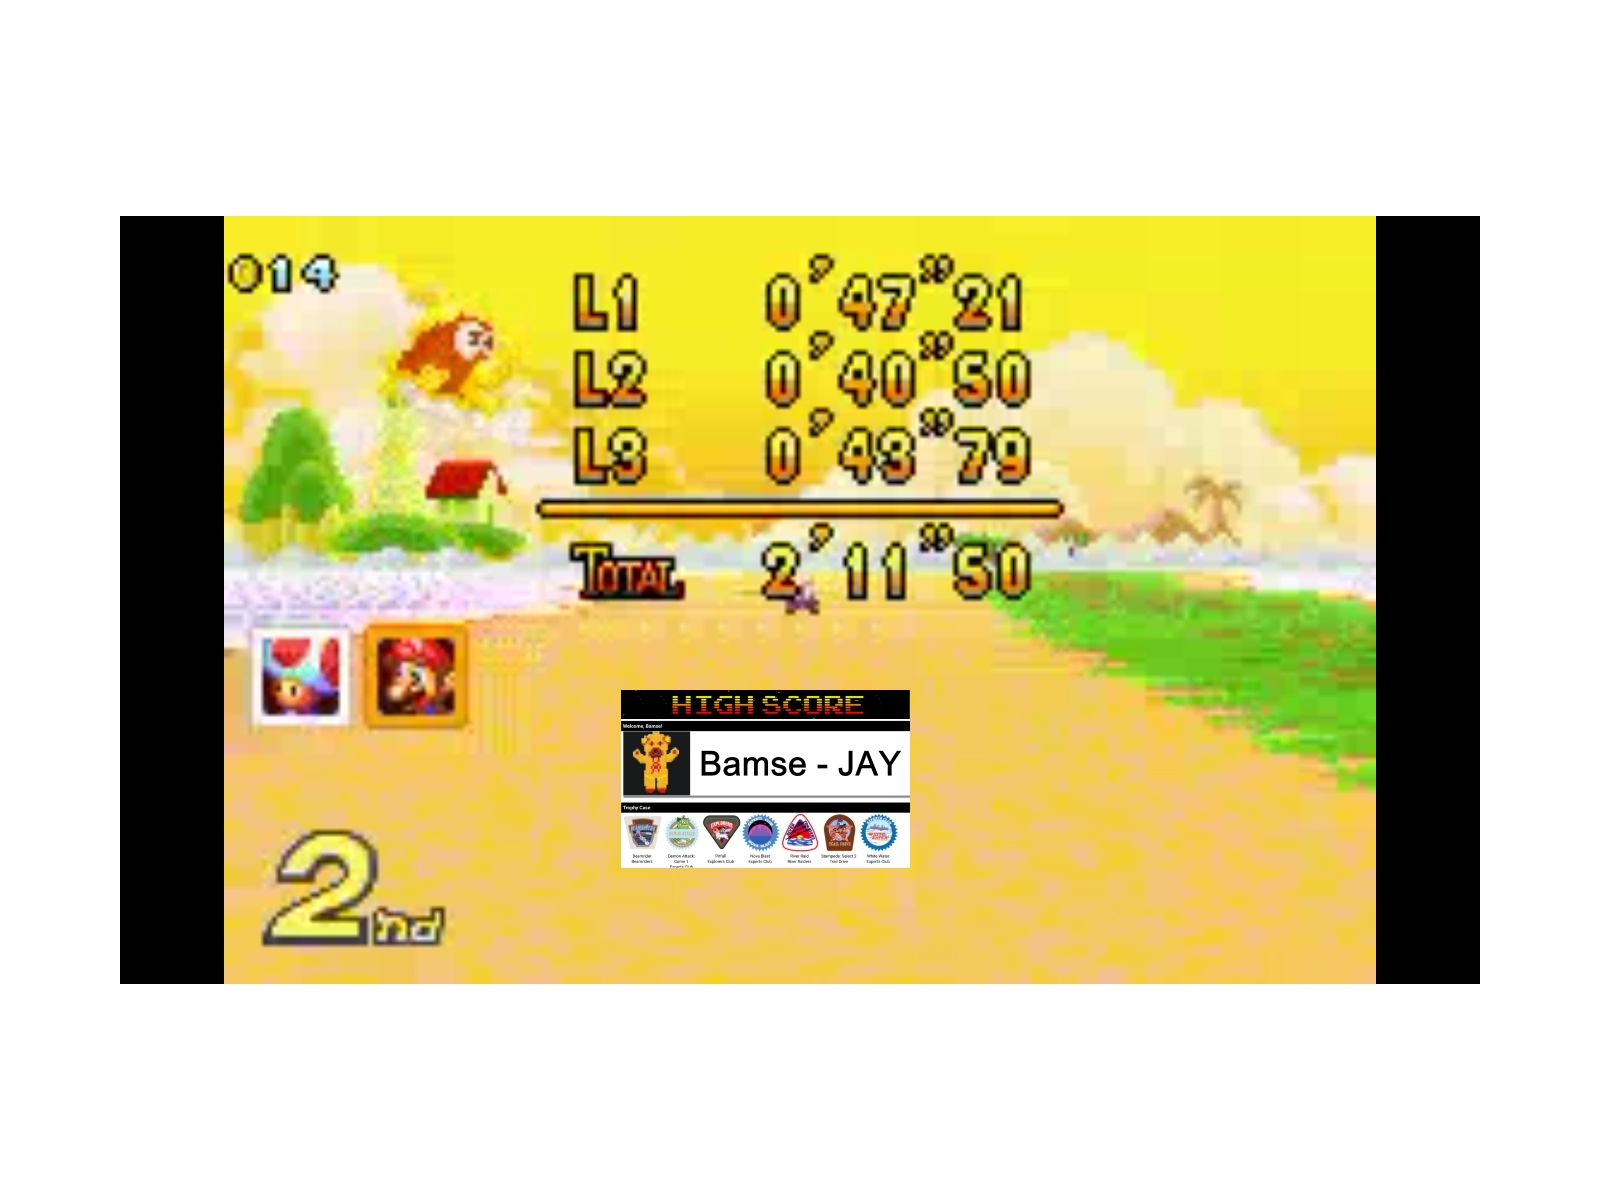 Bamse: Mario Kart Super Circuit: Cheep Cheep Island [100cc] [Lap Time] (GBA Emulated) 0:00:40.5 points on 2019-12-17 13:16:44